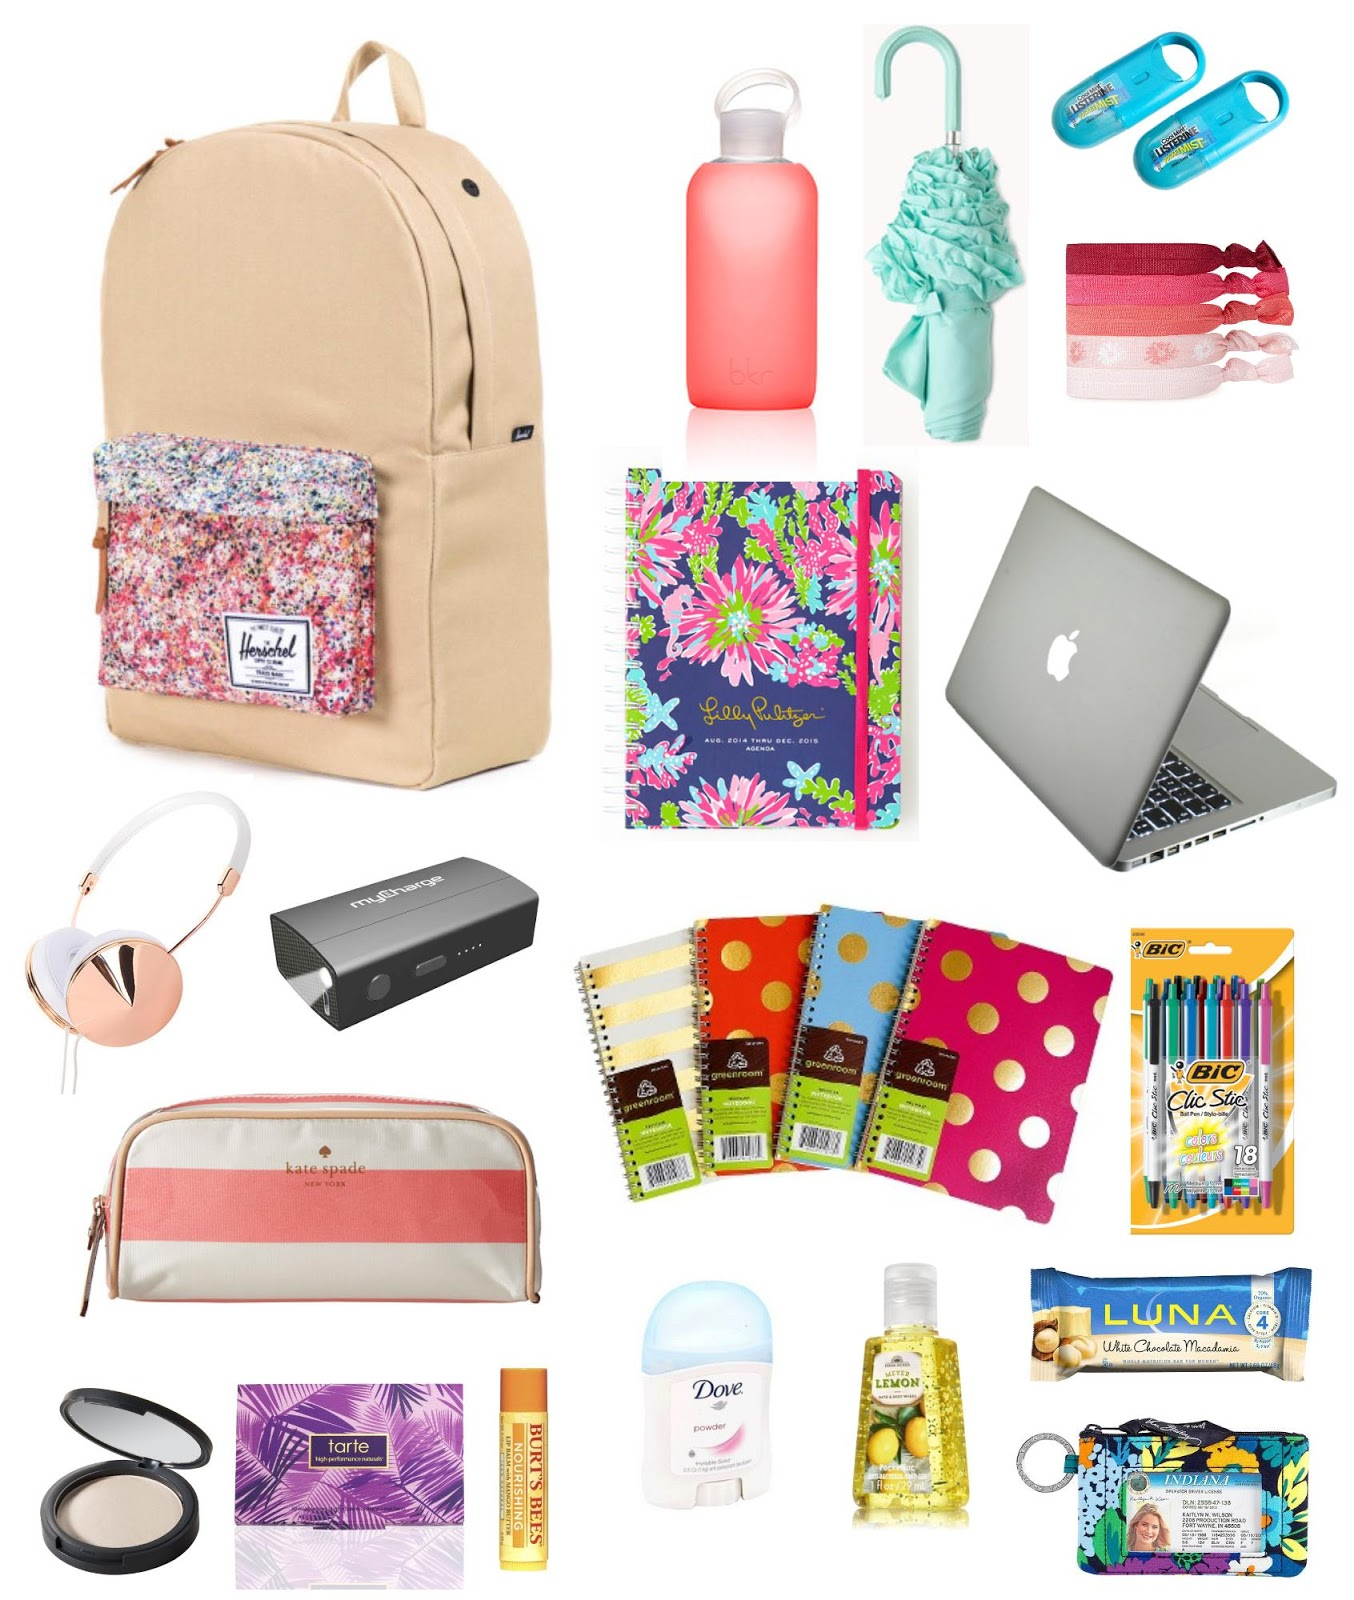 Find and save ideas about College essentials on Pinterest. | See more ideas about Uni essentials, Packing list for college and Uni list. This college kit to help you brave the germ-filled shitshow that is campus life. 19 DIY Survival Kits For All The Worst-Case Scenarios.